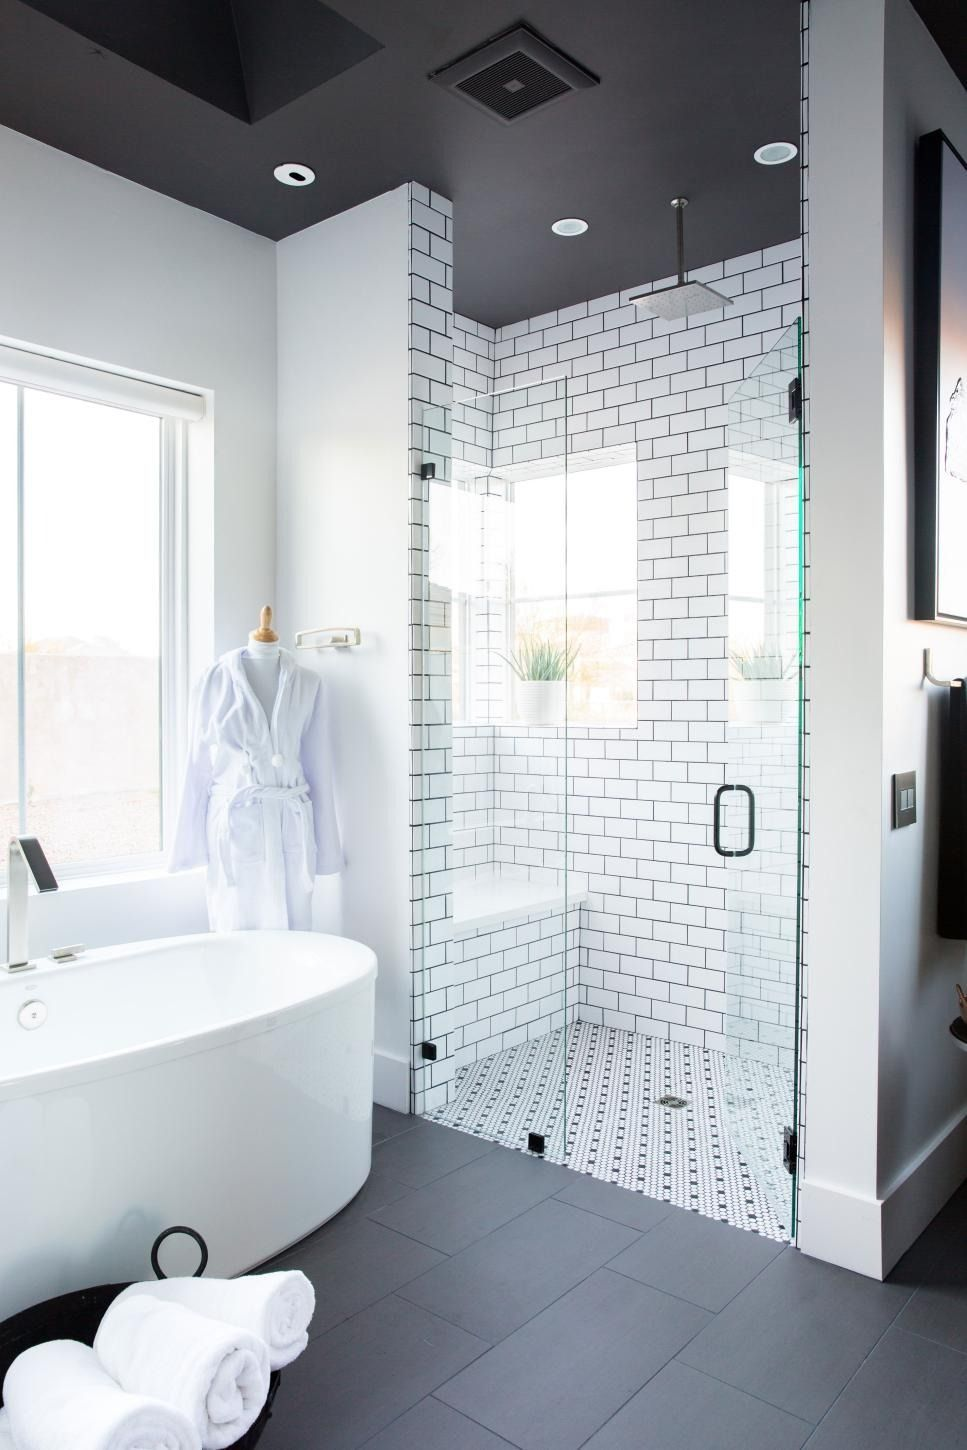 Master bedroom bathroom layout  Unique Features You Should Consider Adding to Your Master bedroom